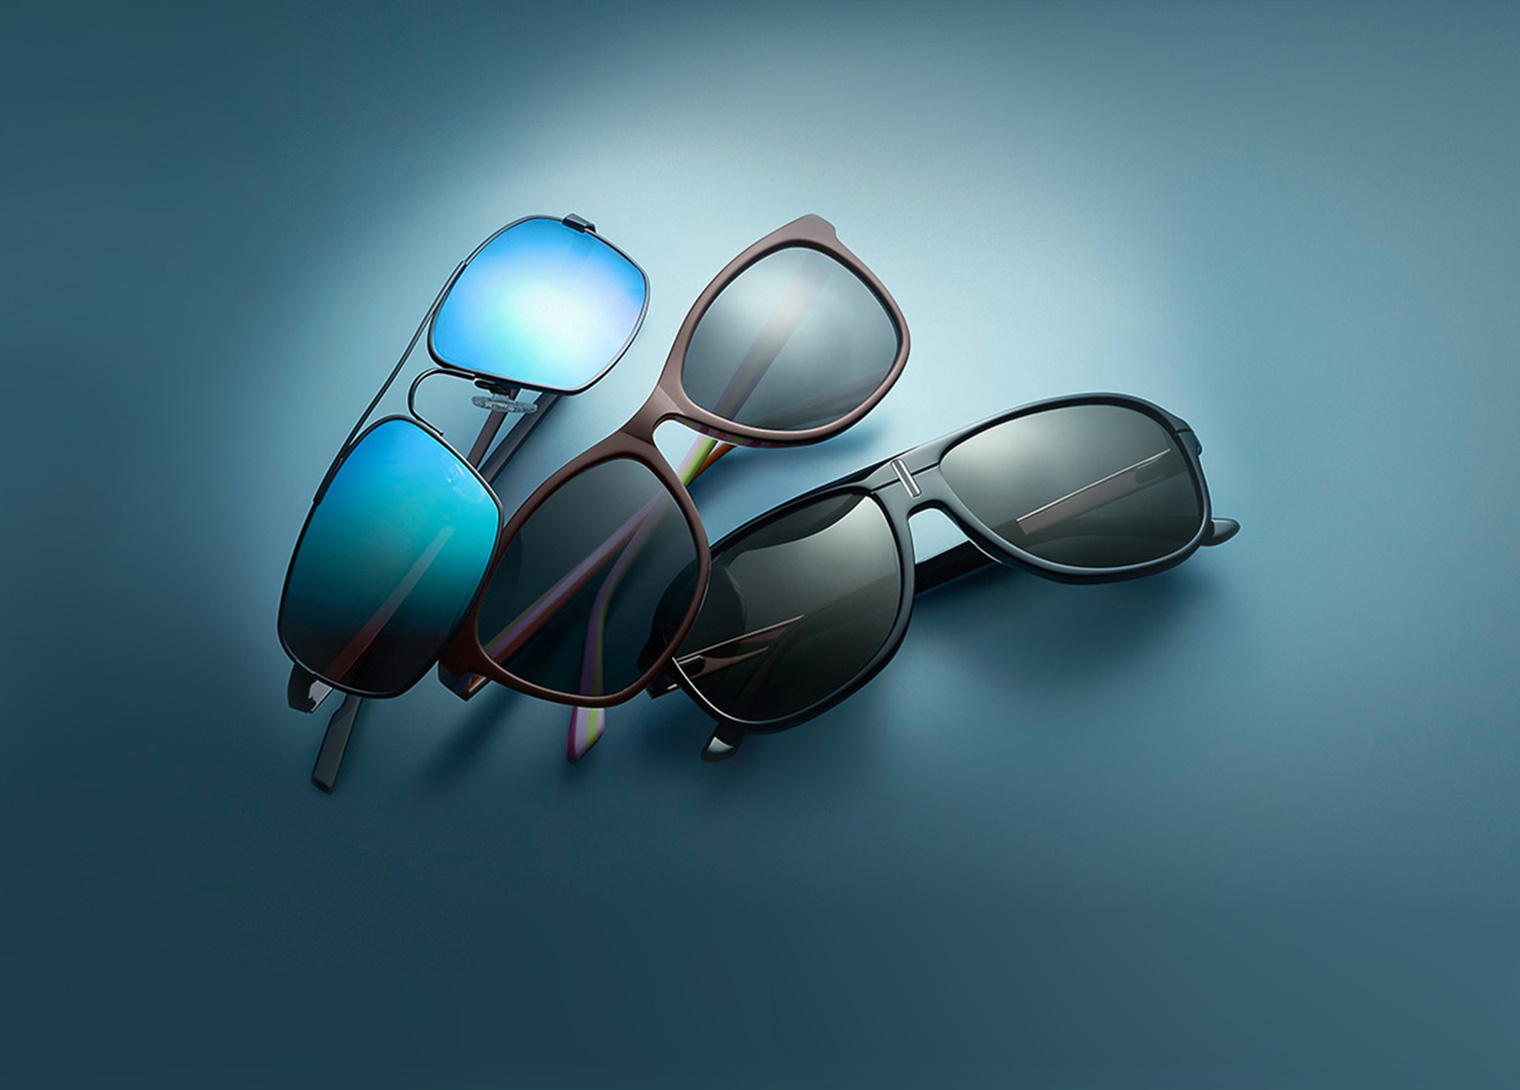 Discover sunglasses from Eschenbach Eyewear